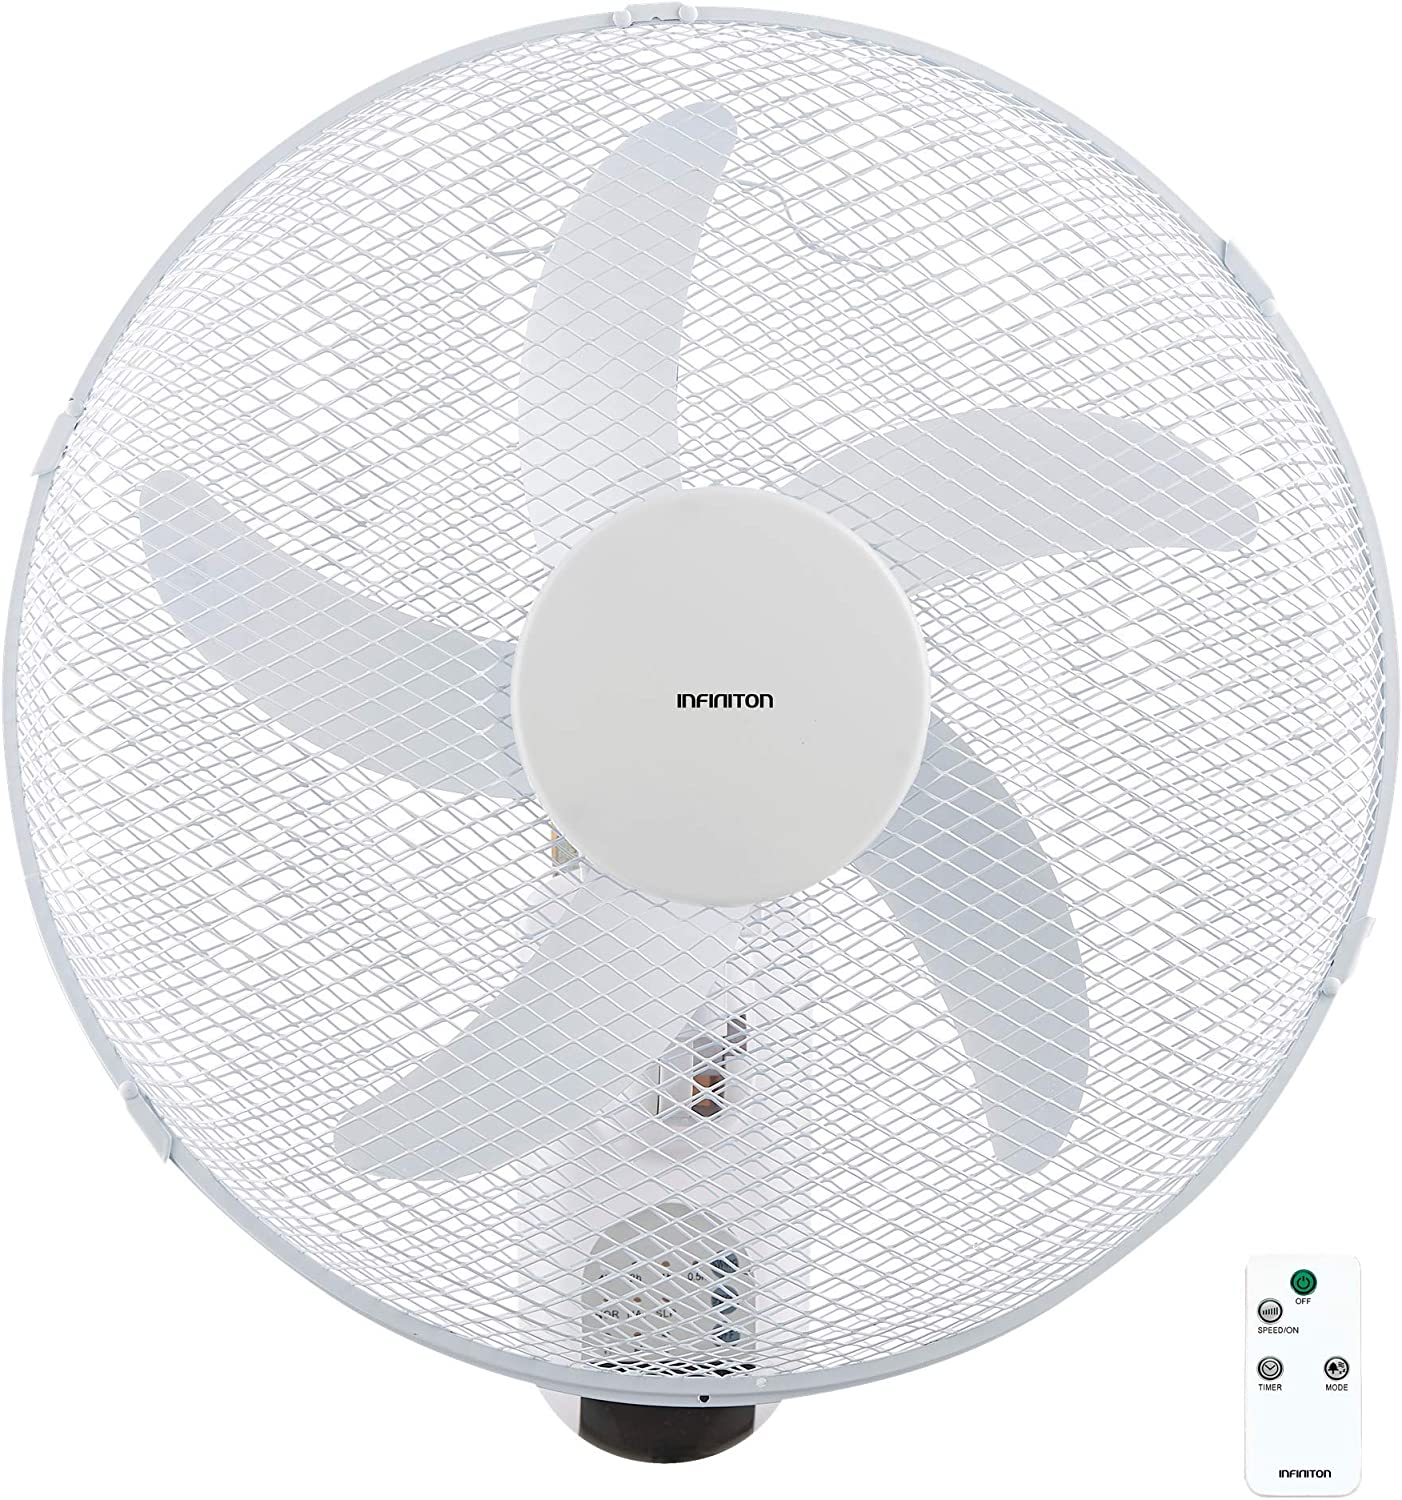 INFINITON Wing Wall Fan 40 cm 3 Speeds Wide Coverage 230 V//50 Hz//60 W Remote Control